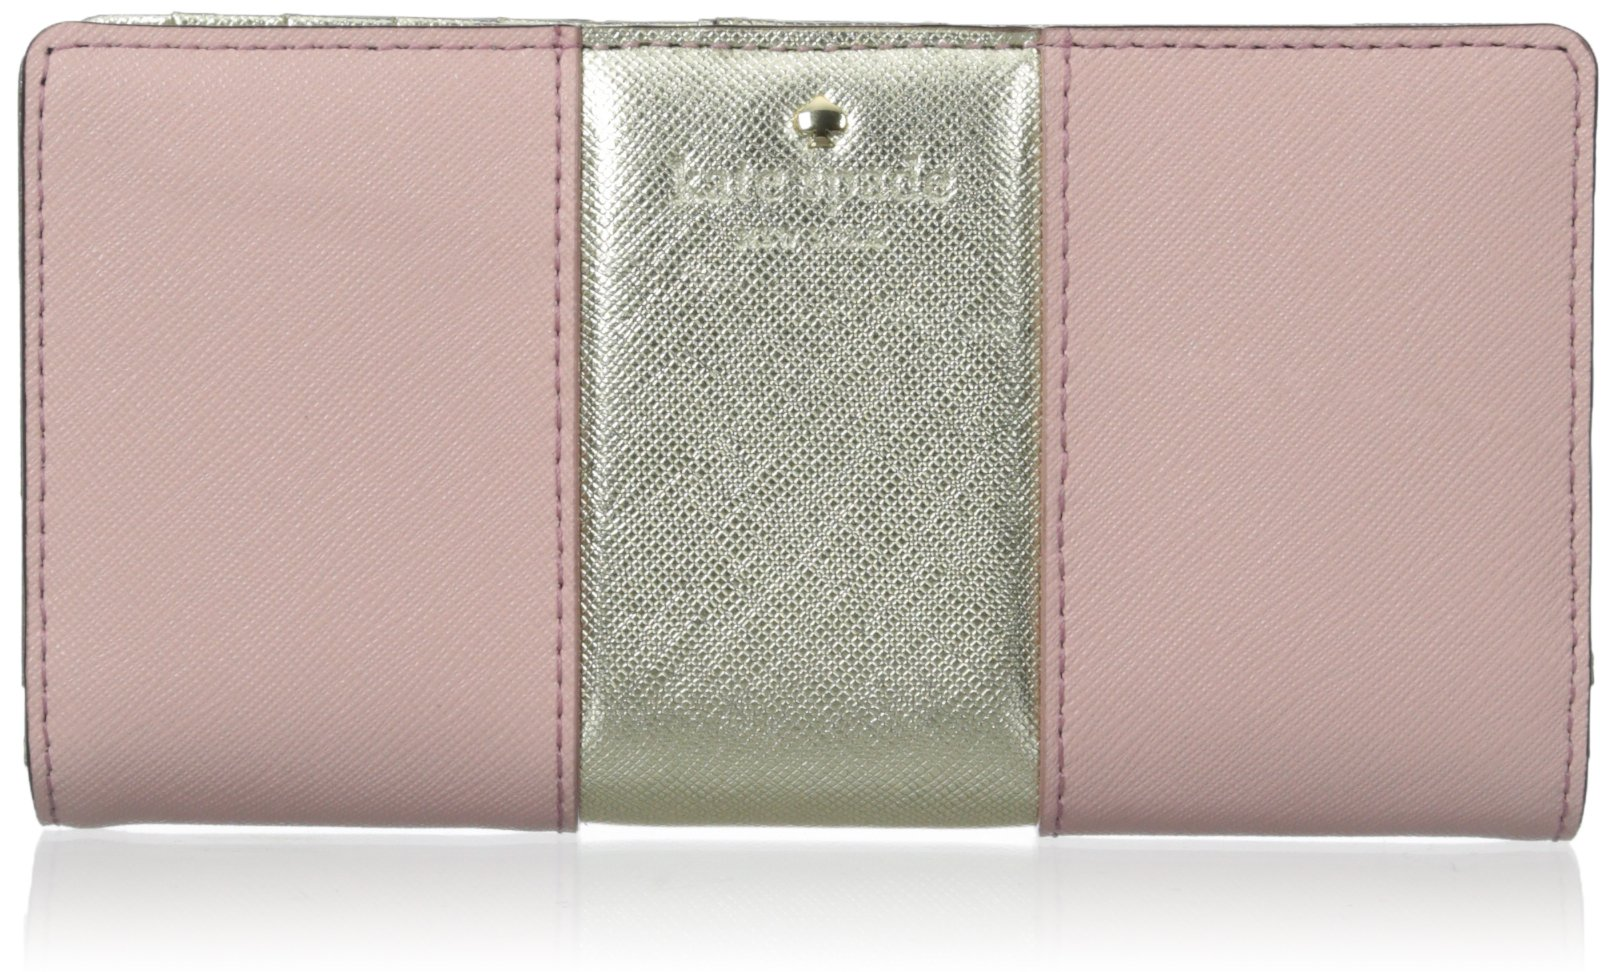 kate spade new york Cedar Street Racing Stripe Stacy Wallet, Rose Jade/Gold, One Size